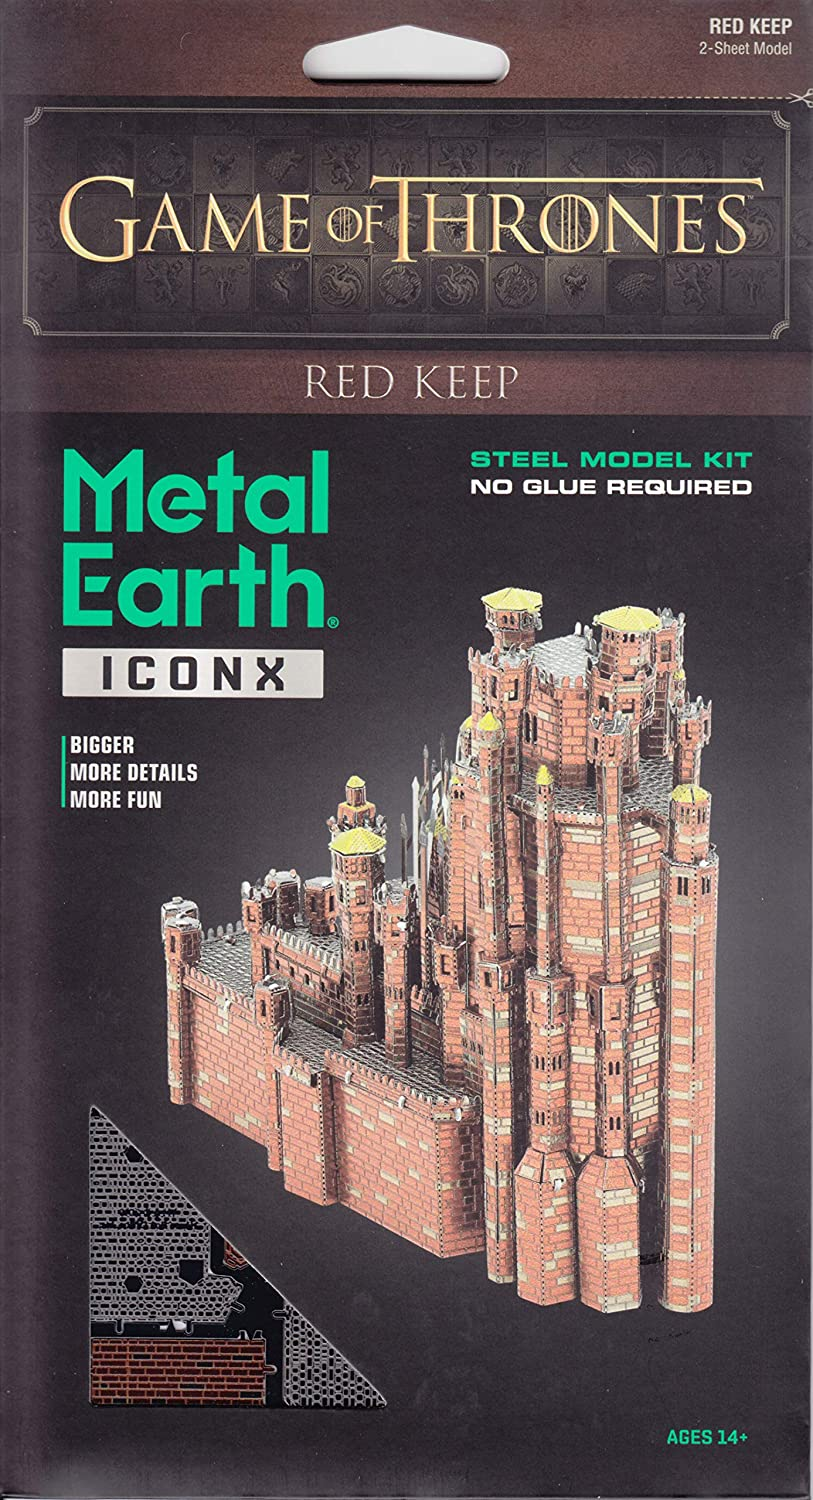 Fascinations Metal Earth ICONX Game of Thrones Red Keep 3D Metal Model Kit